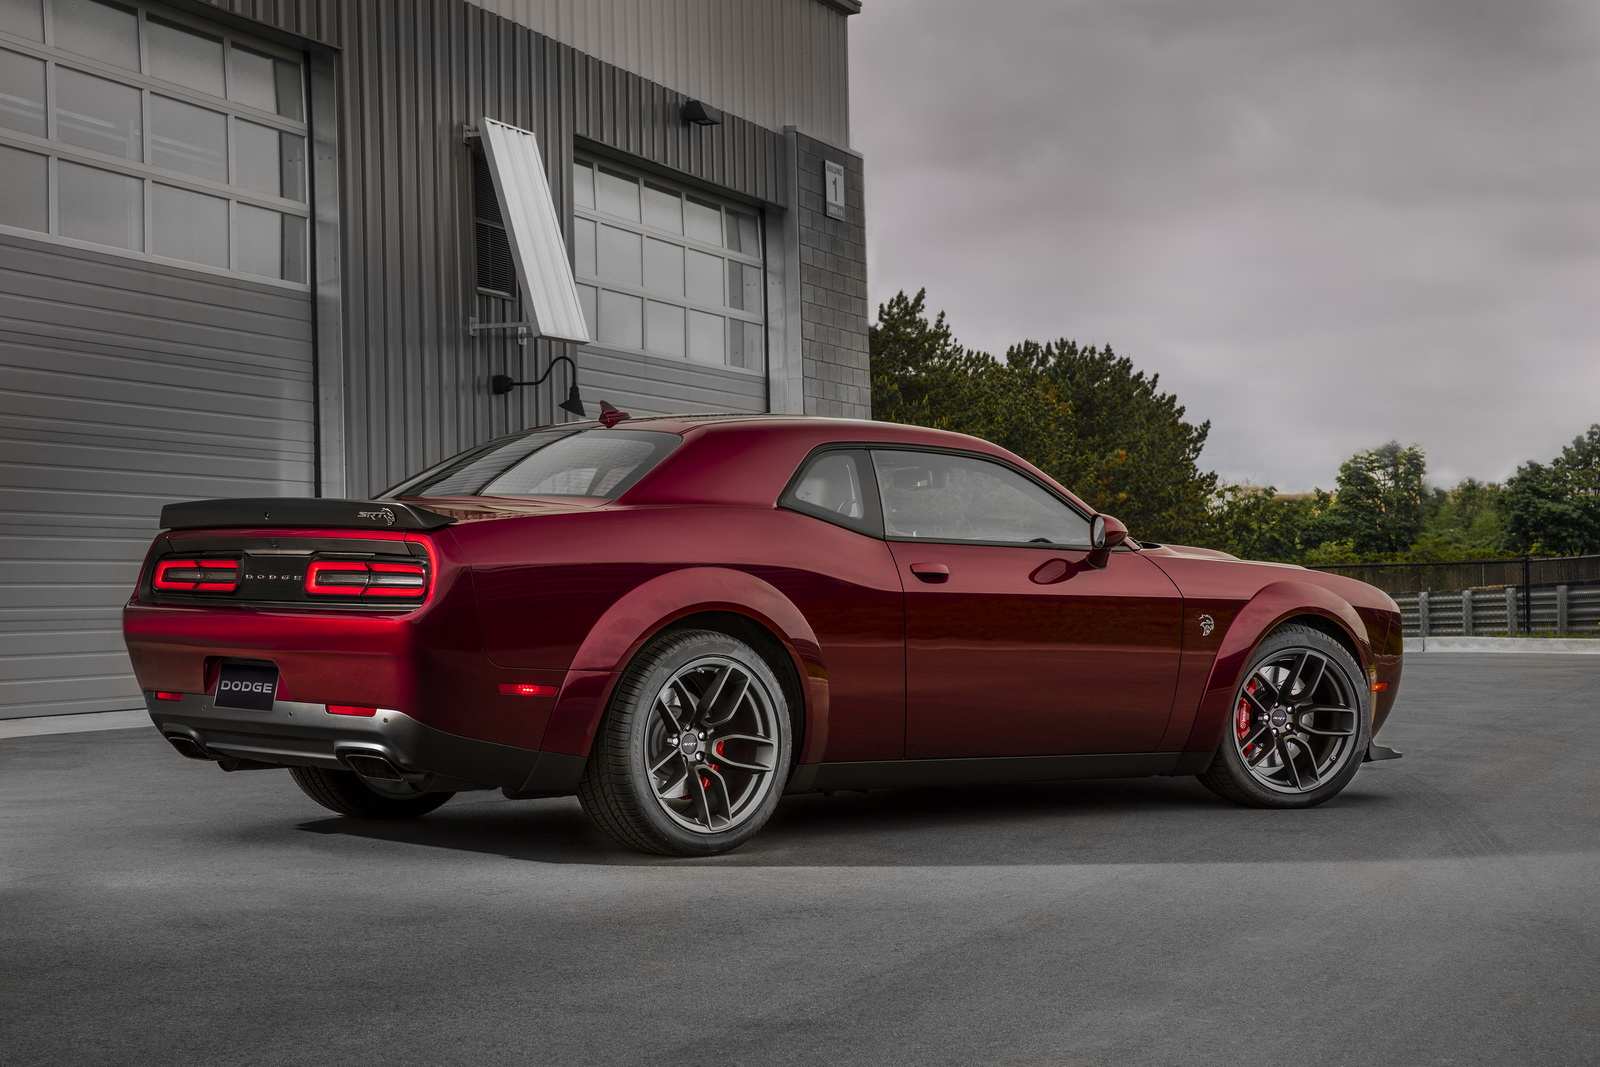 dodge launches widebody option for 2018 challenger hellcat w video carscoops. Black Bedroom Furniture Sets. Home Design Ideas